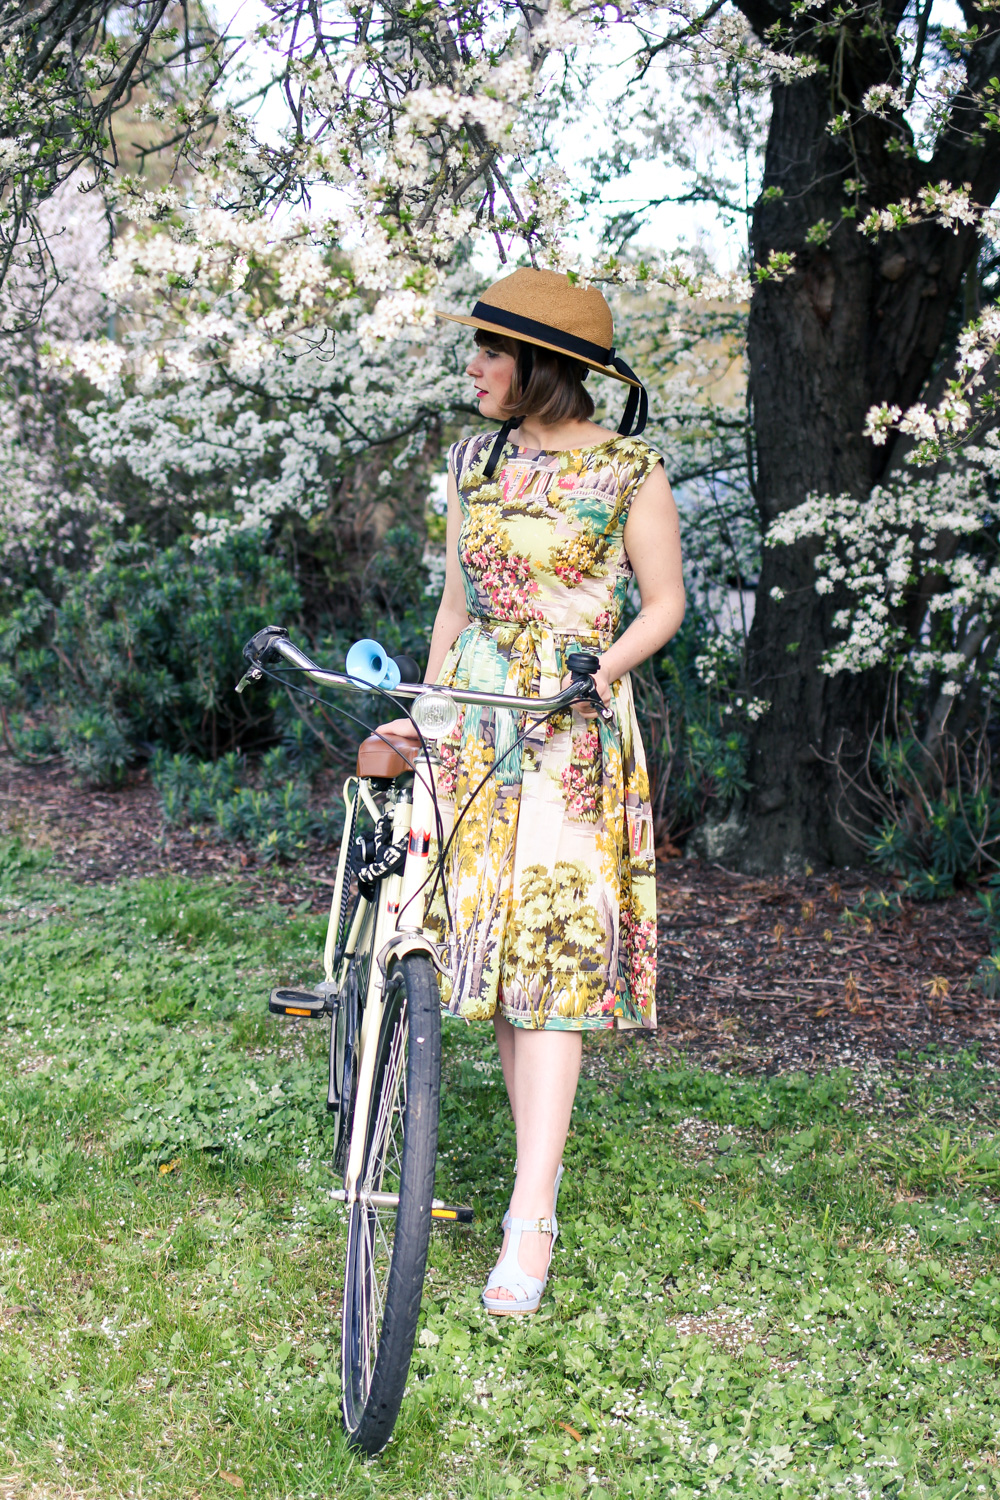 @findingfemme does bike style in Yakkay helmet and lazybones dress on her bike